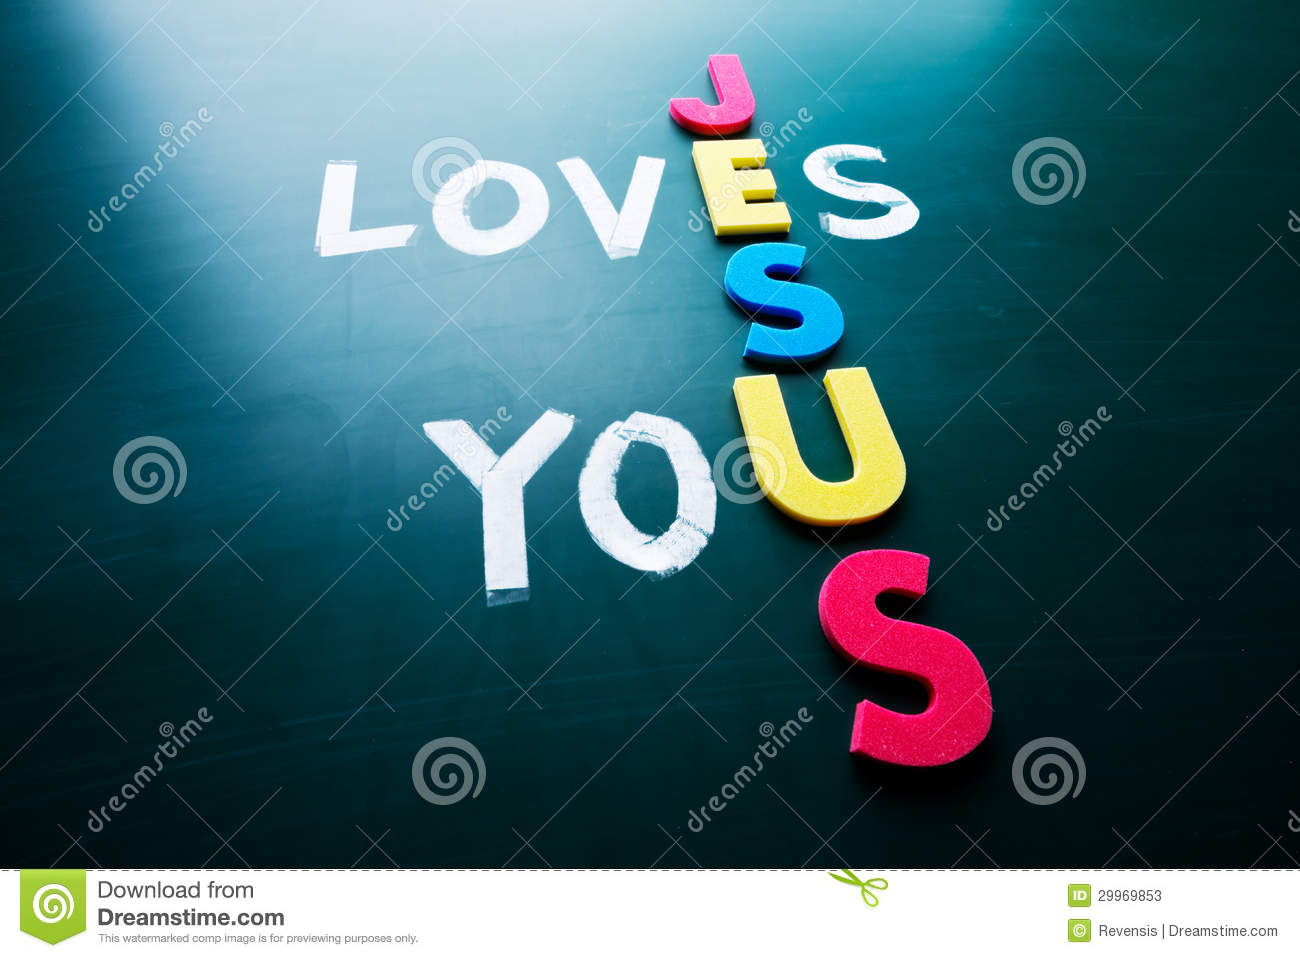 Jesus loves you stock image  Image of help, color